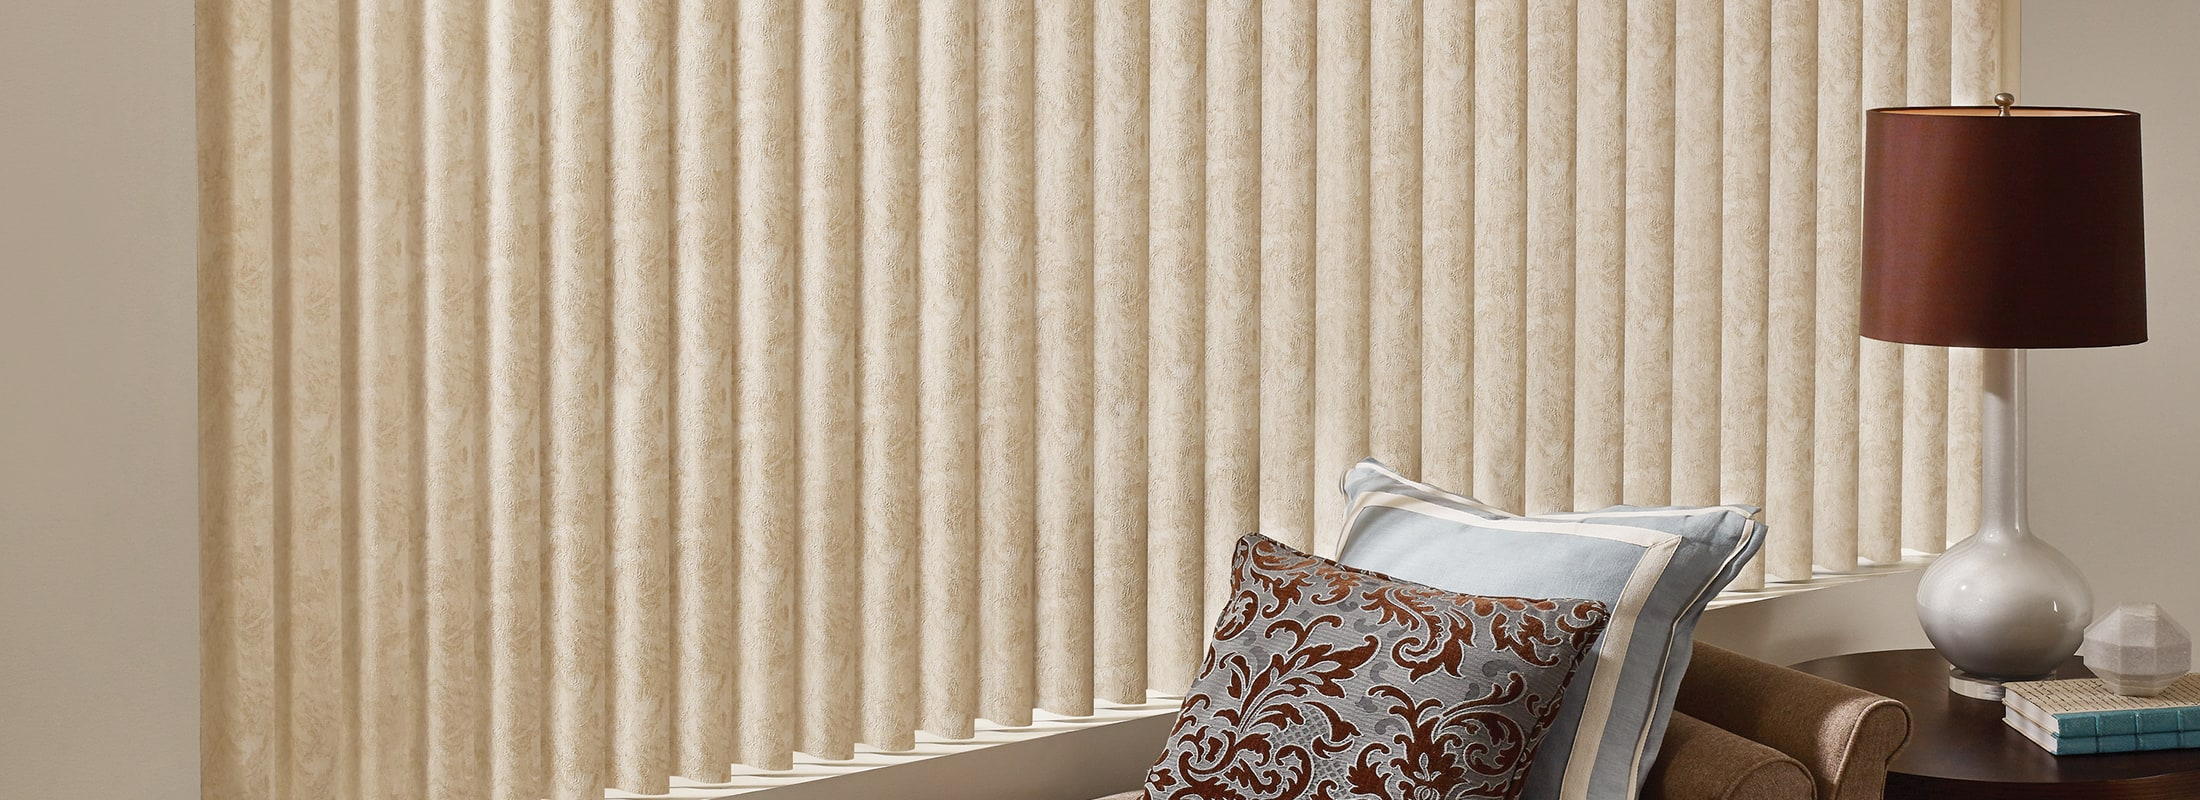 Fabric vertical blinds in Cabriolet Vanilla - Cadence